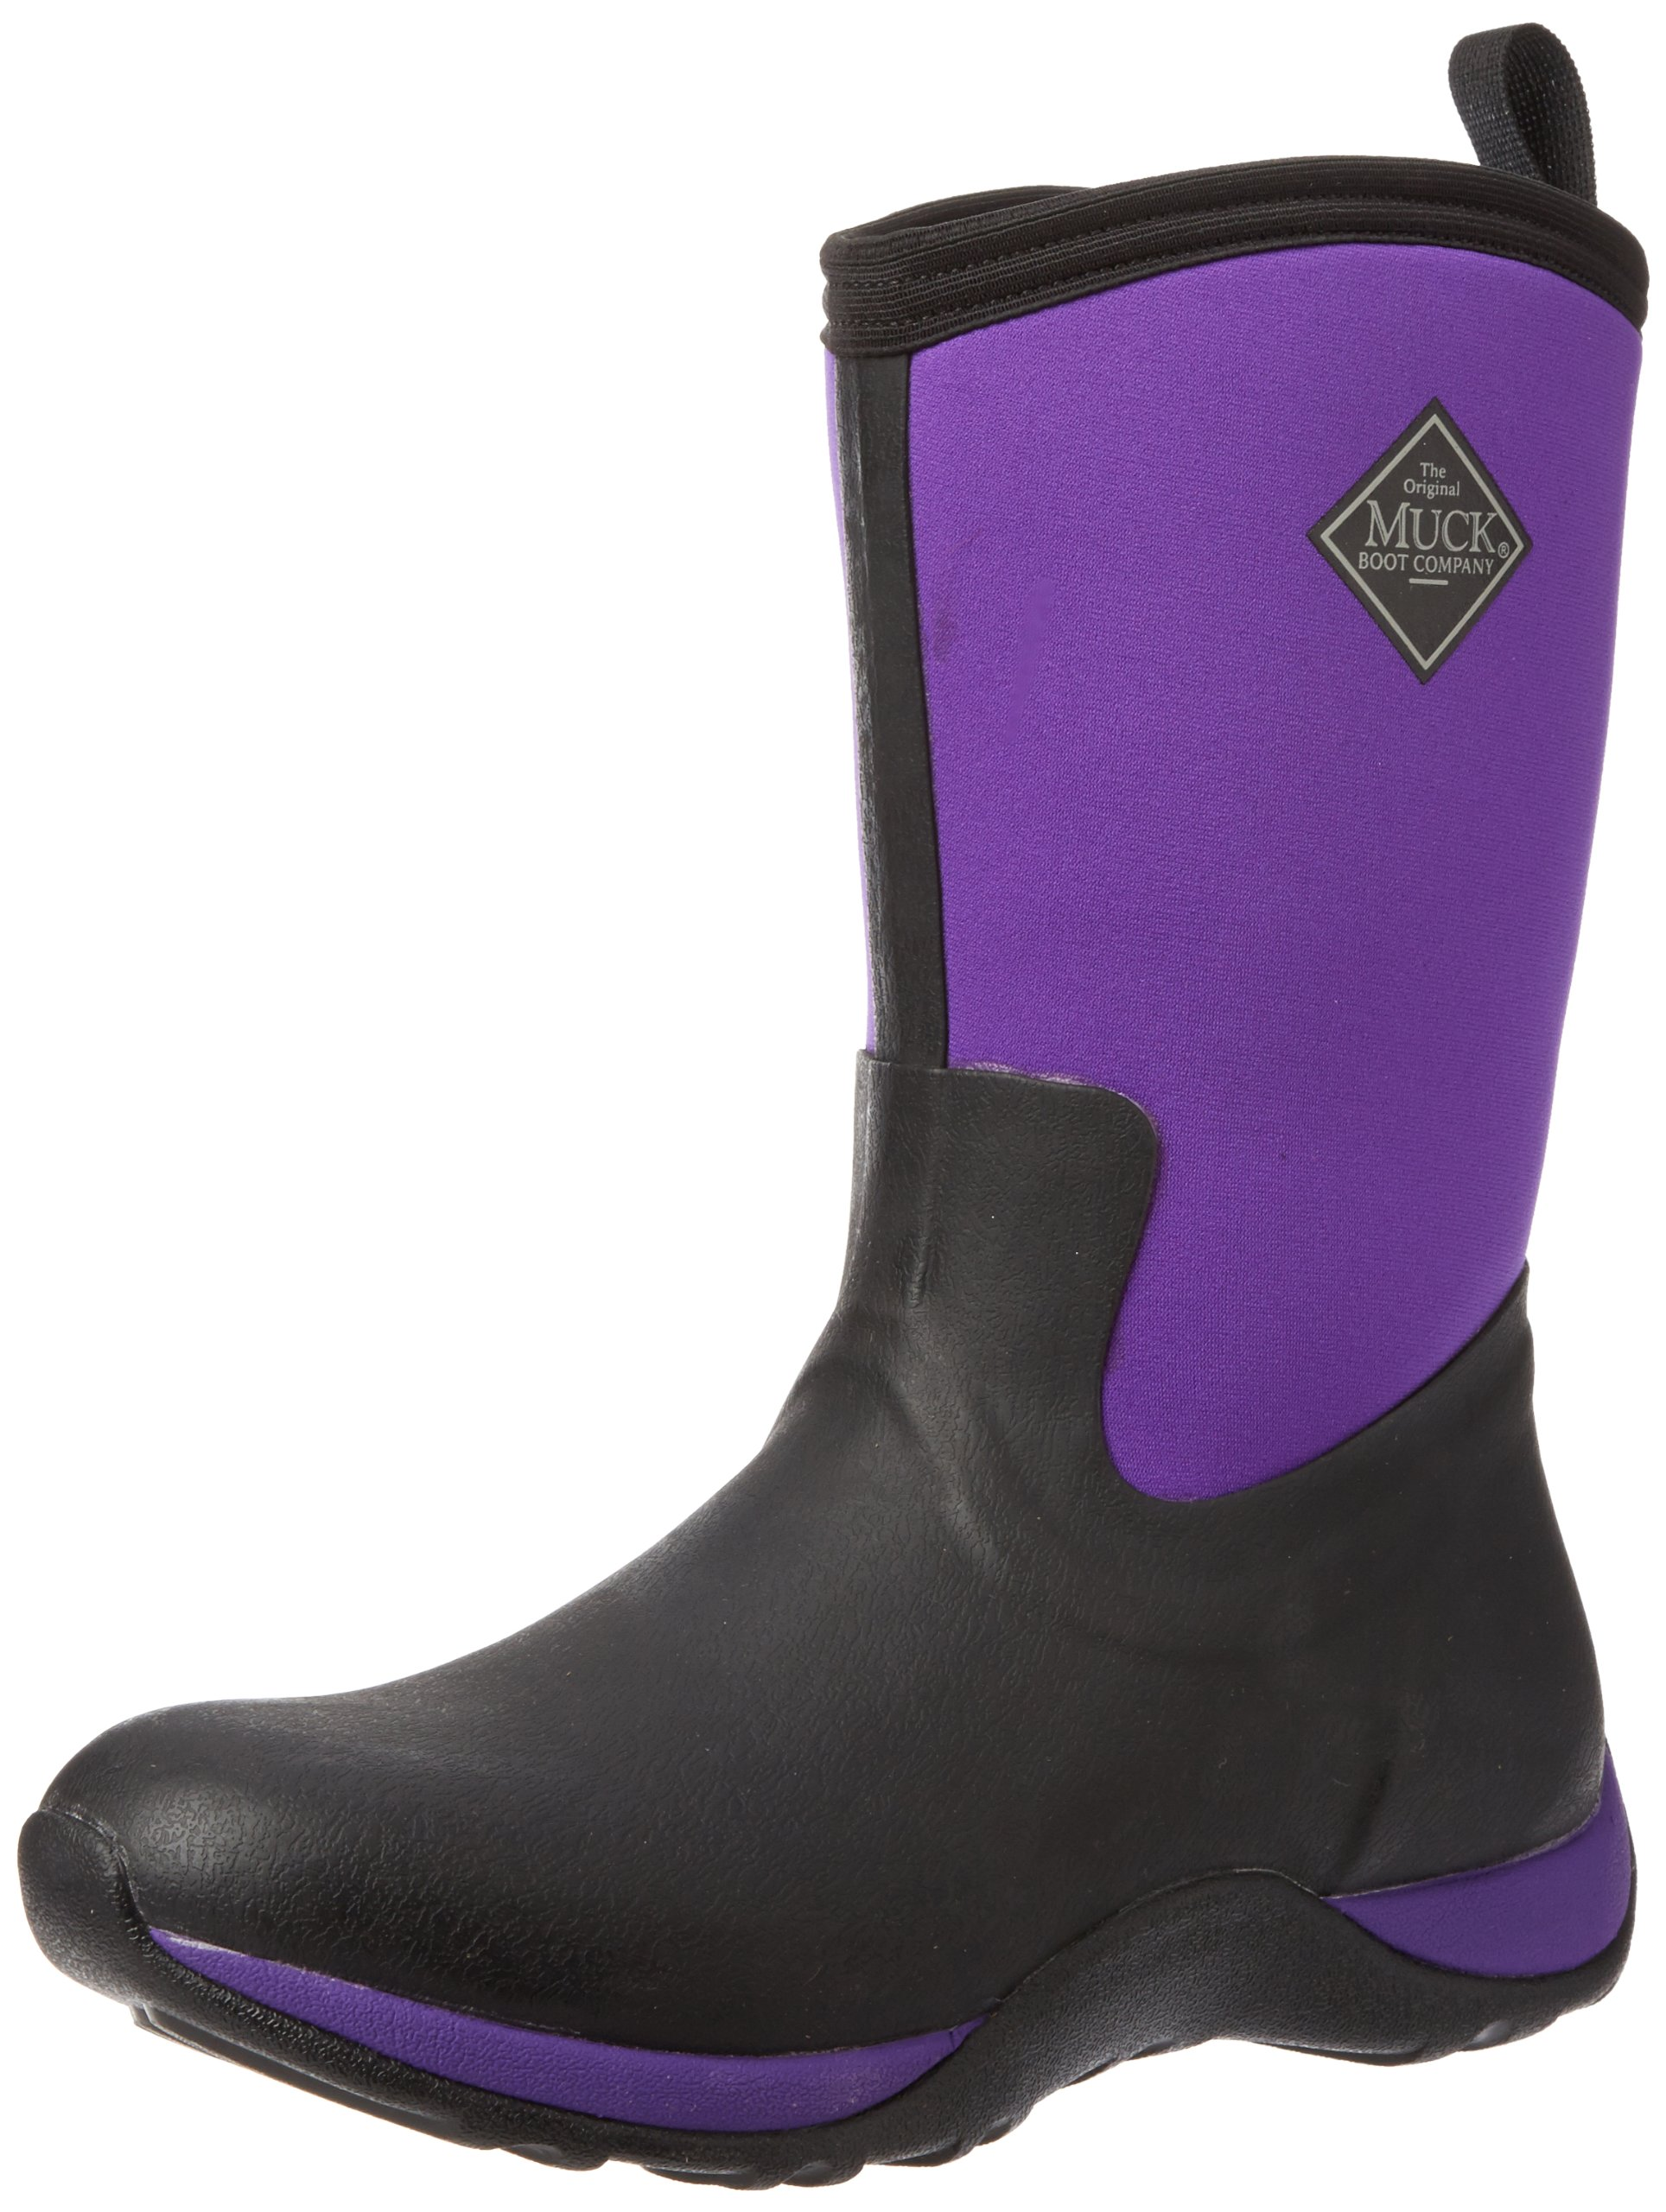 Muck Arctic Weekend Mid-Height Rubber Women's Winter Boots by Muck Boot (Image #1)